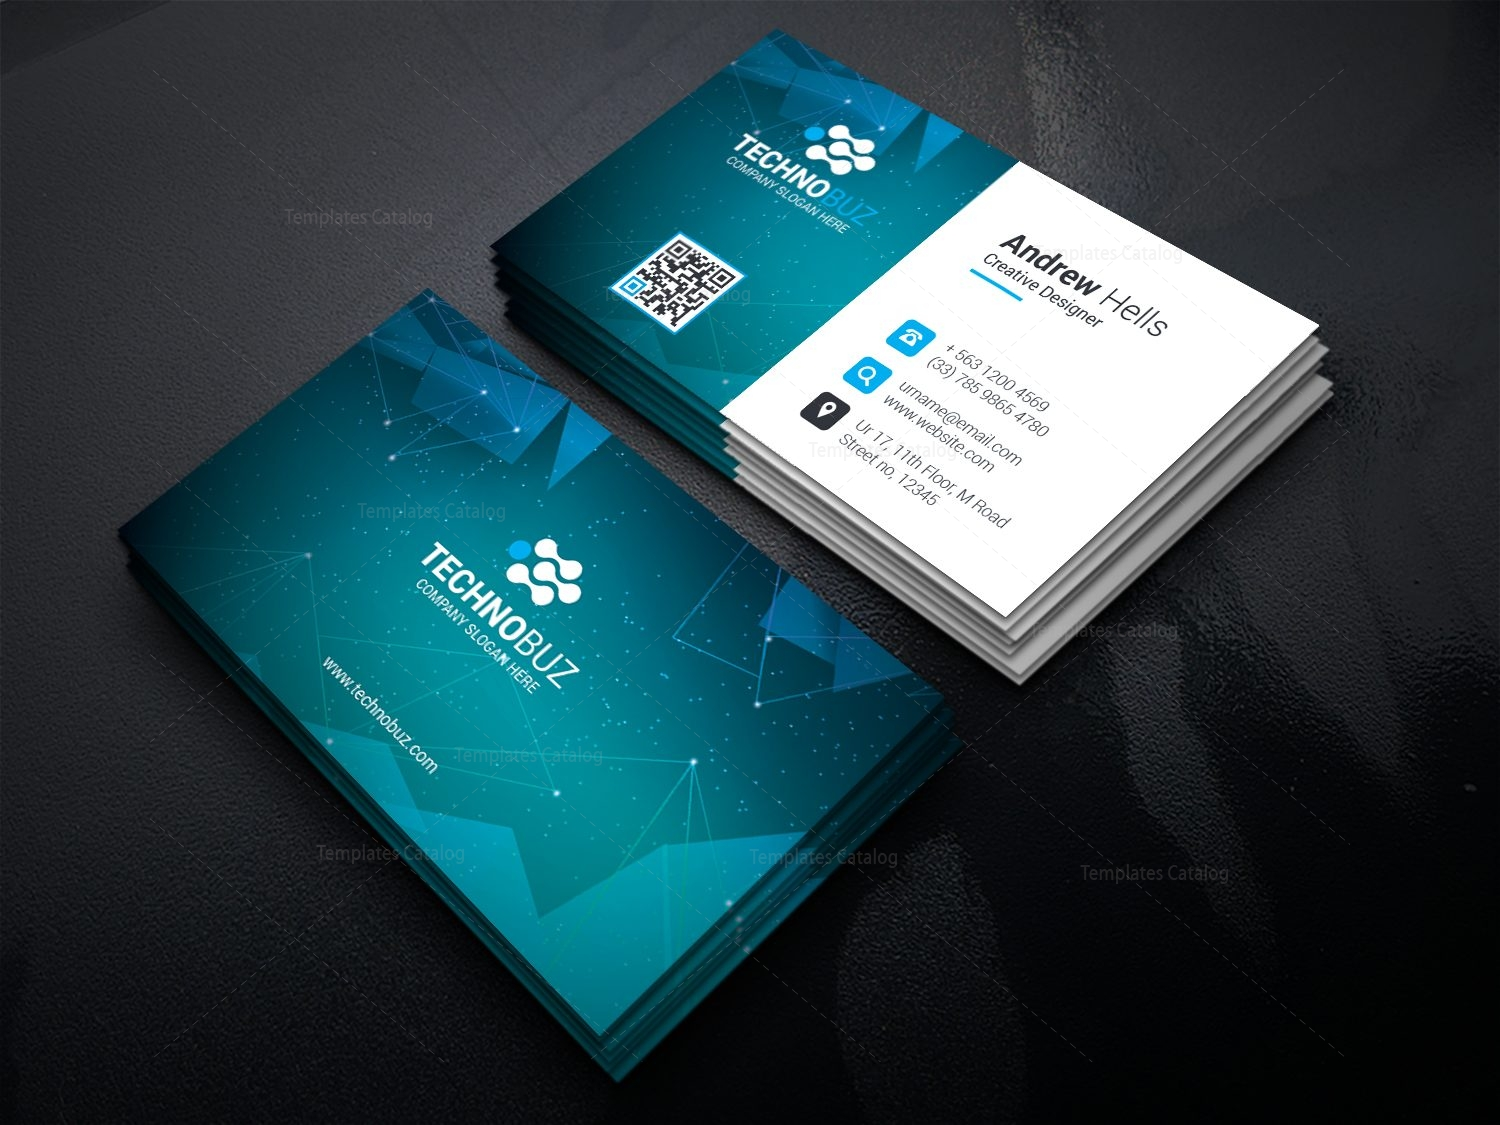 Space technology business card template 000752 template catalog space technology business card template 2 flashek